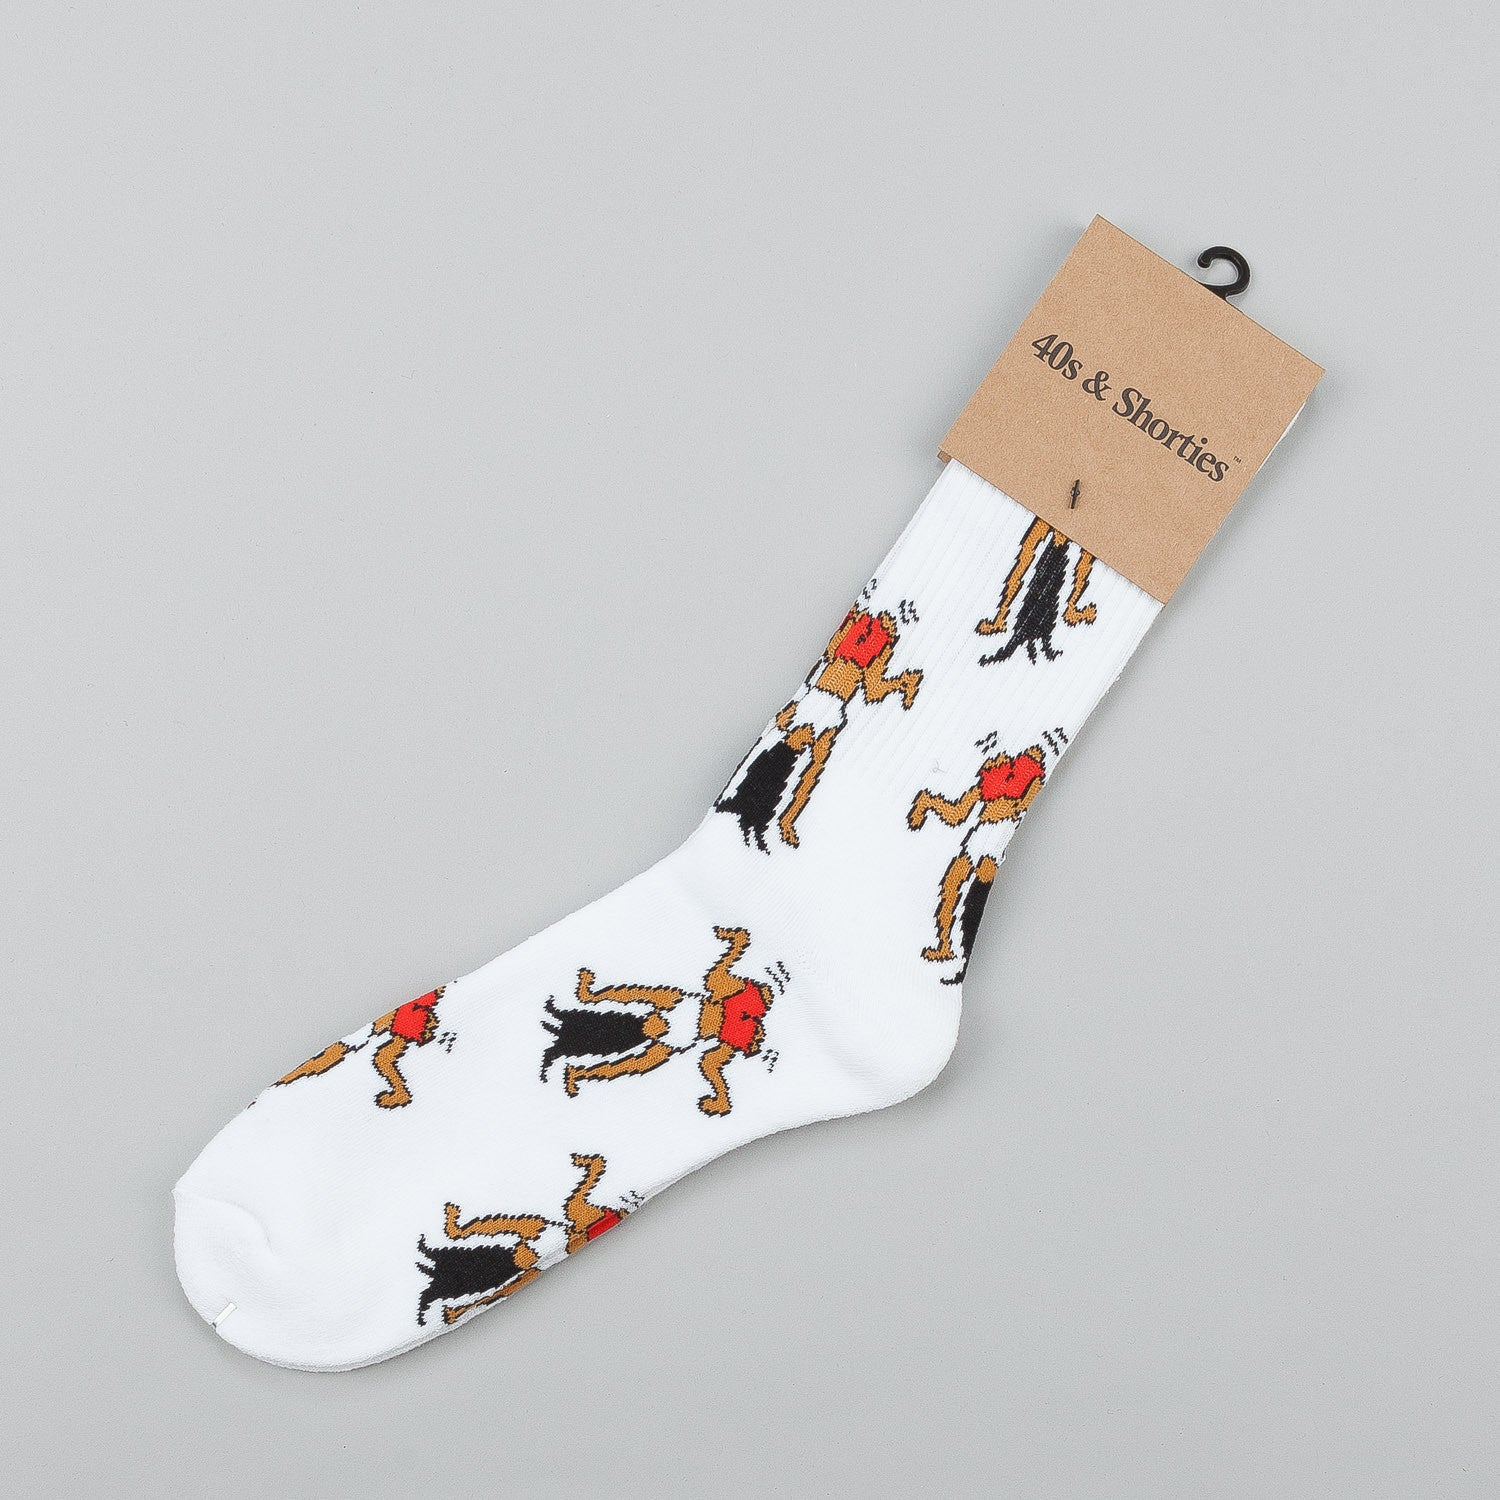 40s & Shorties Original Twerk Socks - White